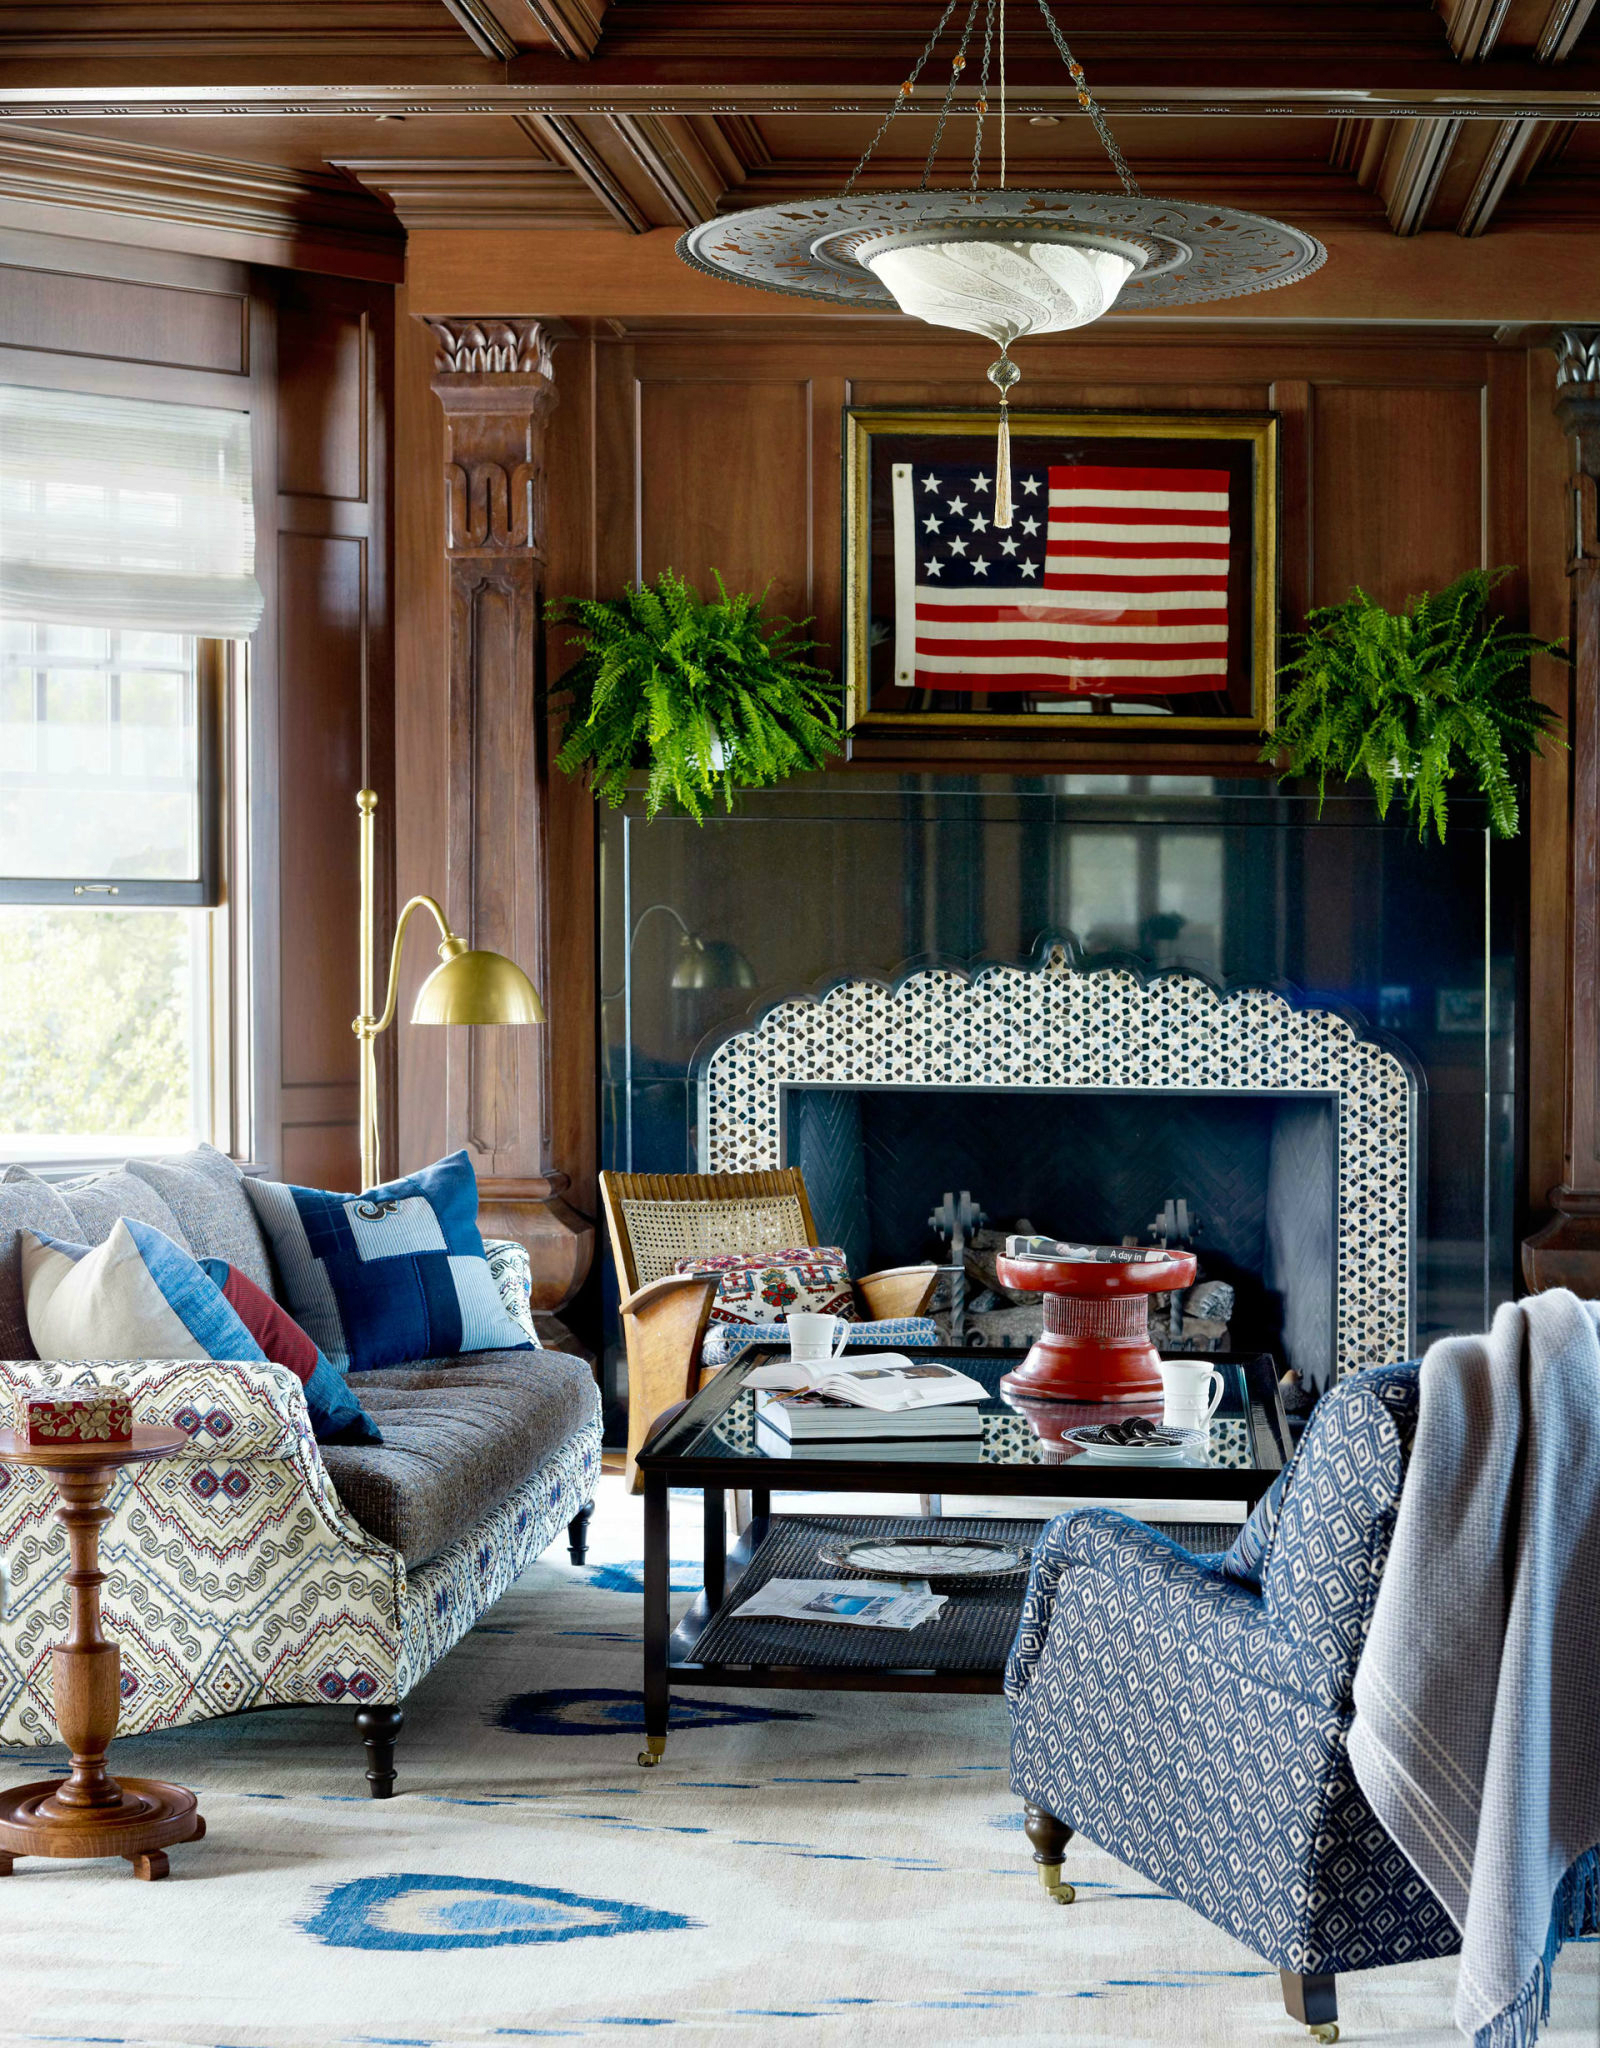 10 Chic Ways to Decorate in Red, White and Blue living room